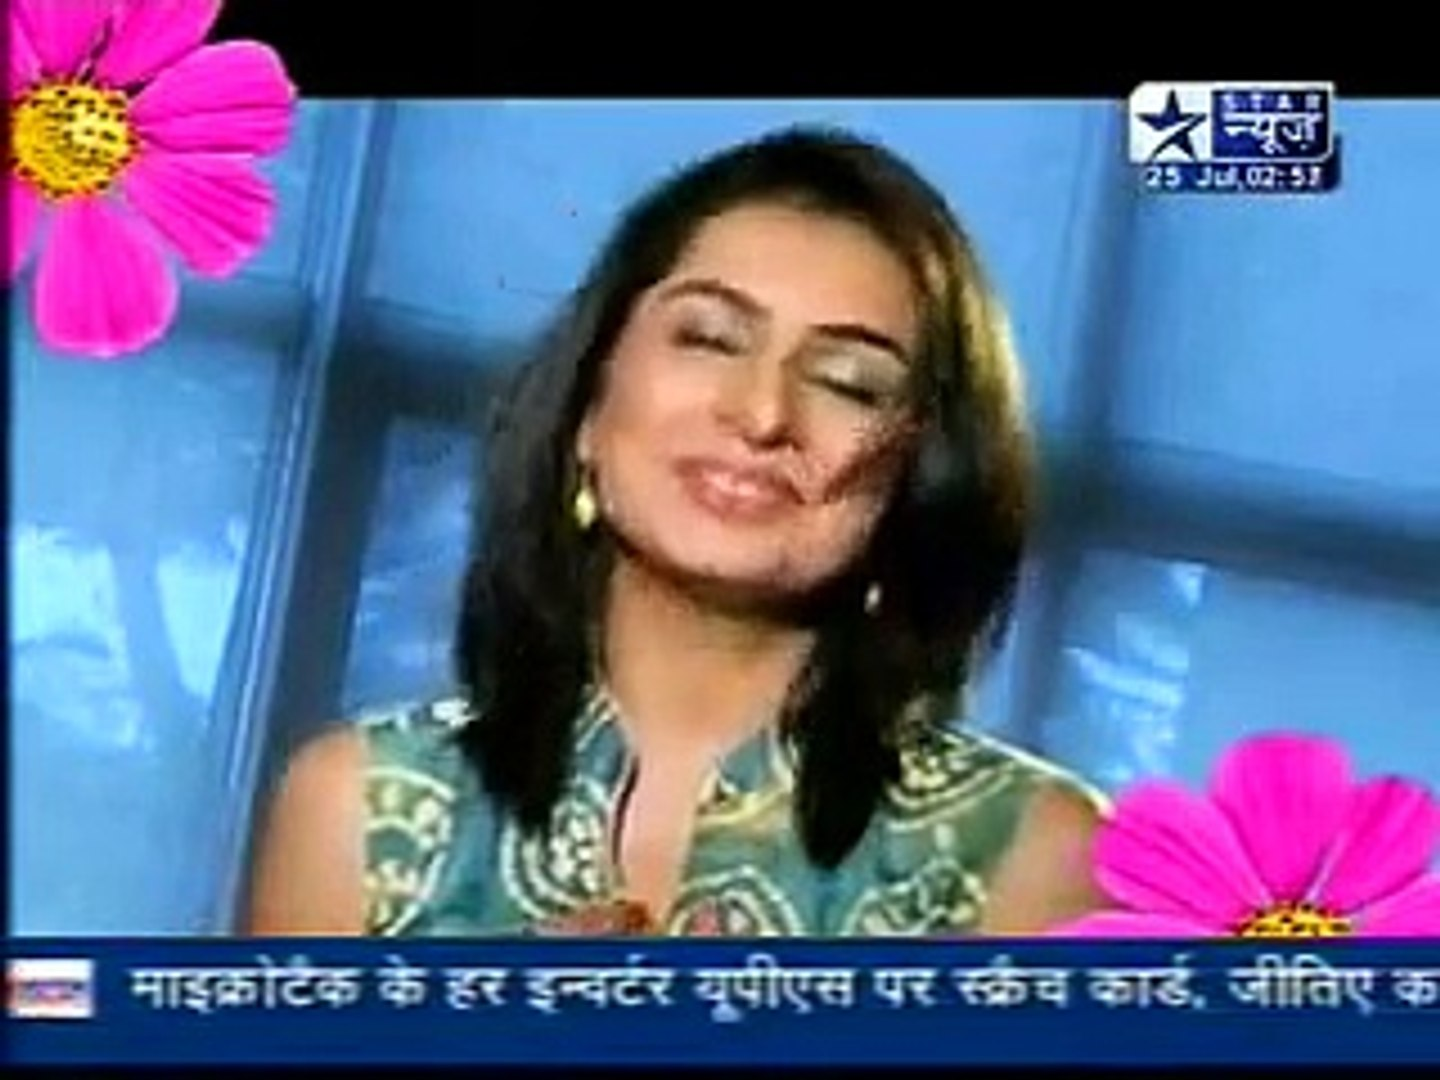 Mohit-Sanaya on SBS 25 July